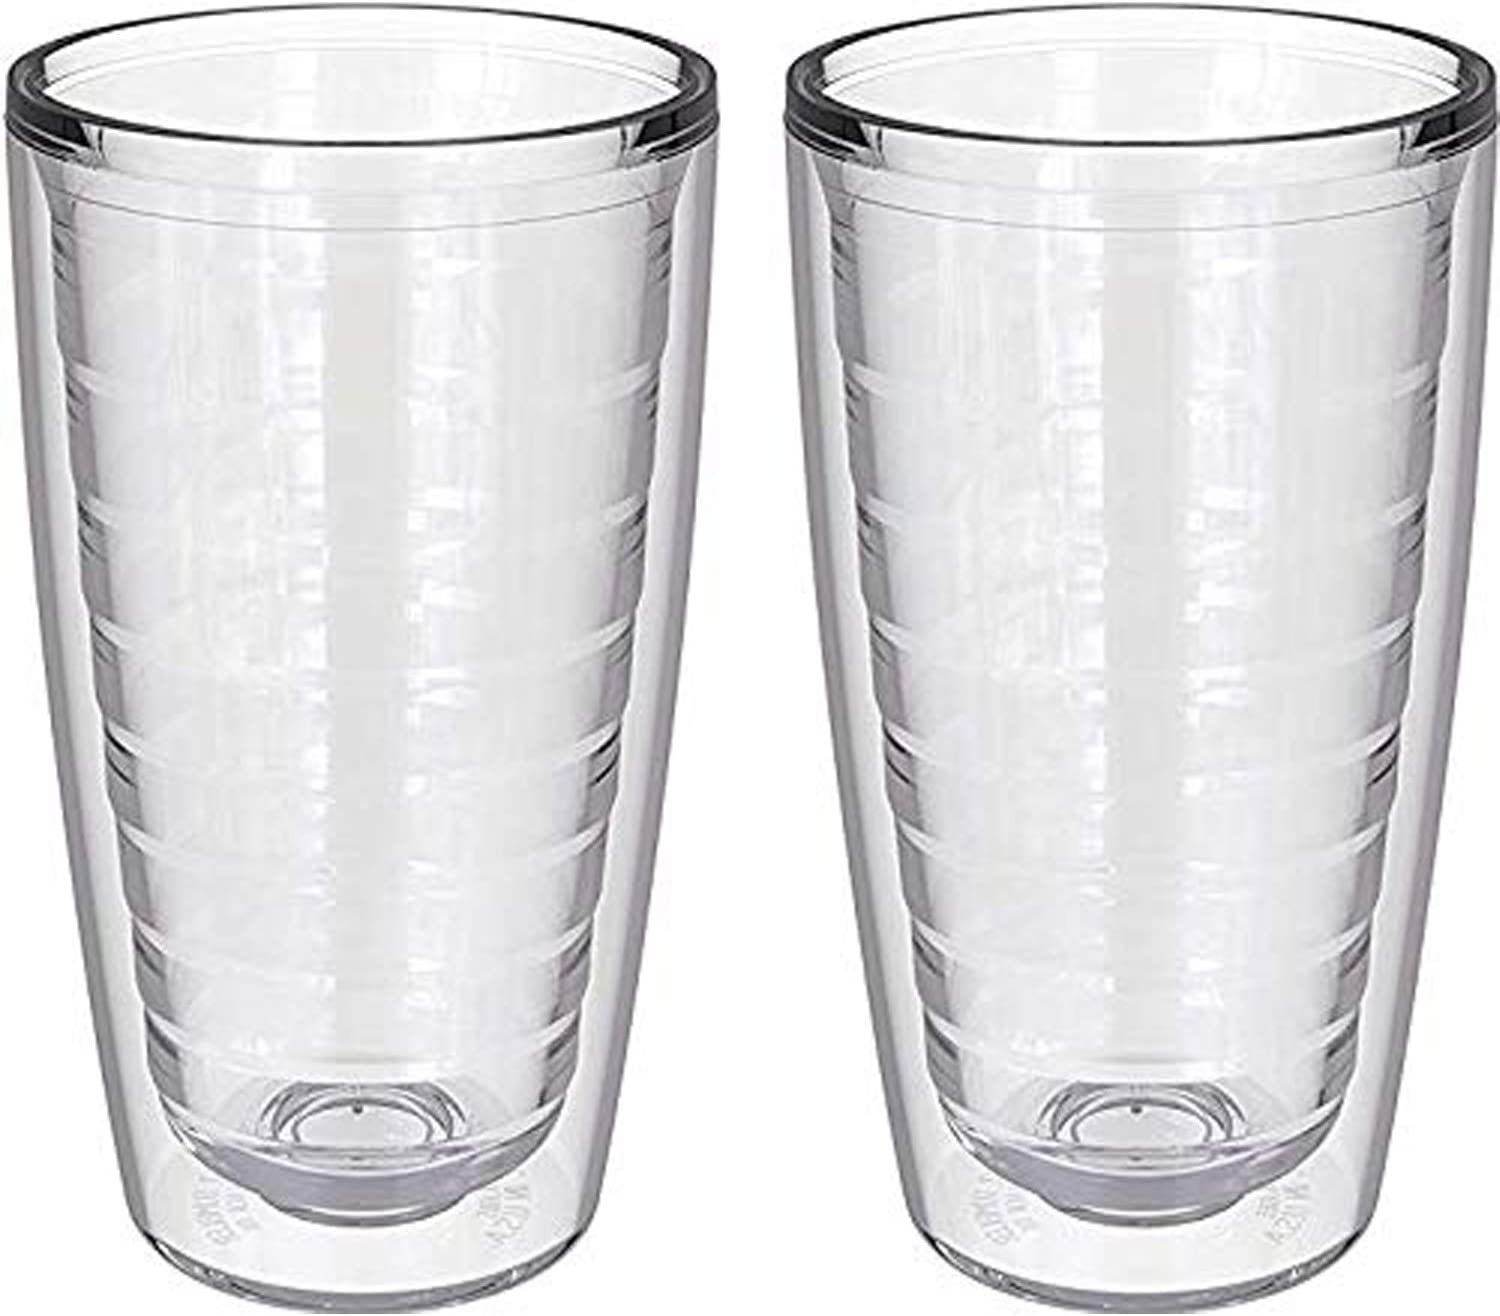 2-pack Insulated Tumblers 16 Ounce - Drinking Glasses Made in USA - Clear (16oz Insulated Glasses)